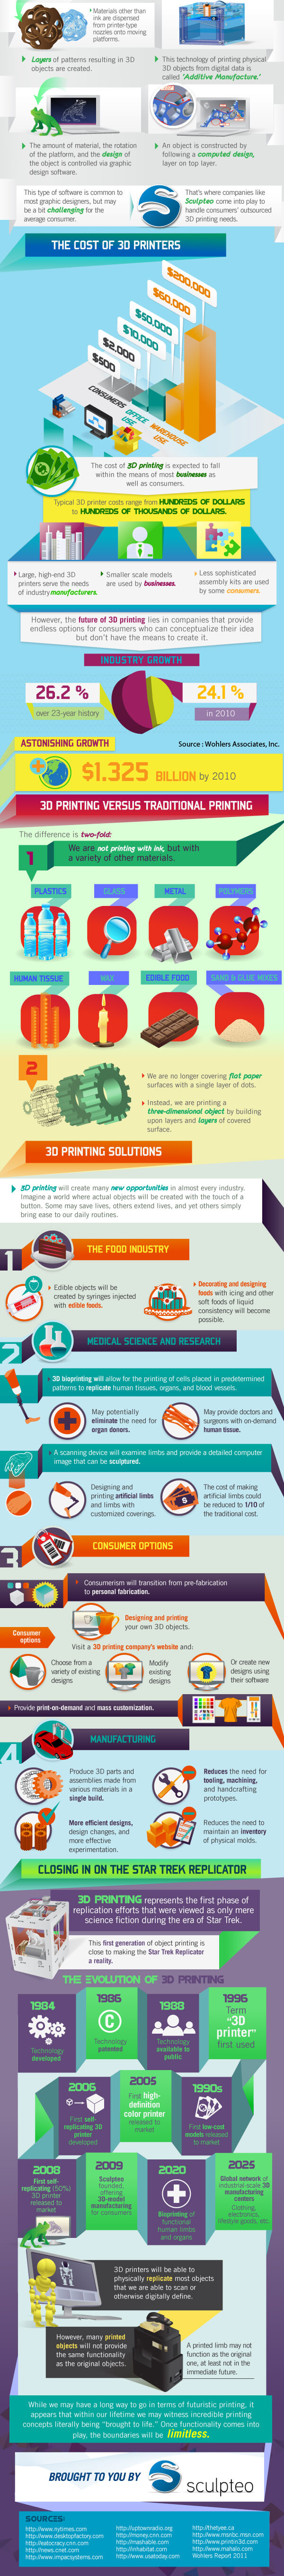 3dprinting-Infographic